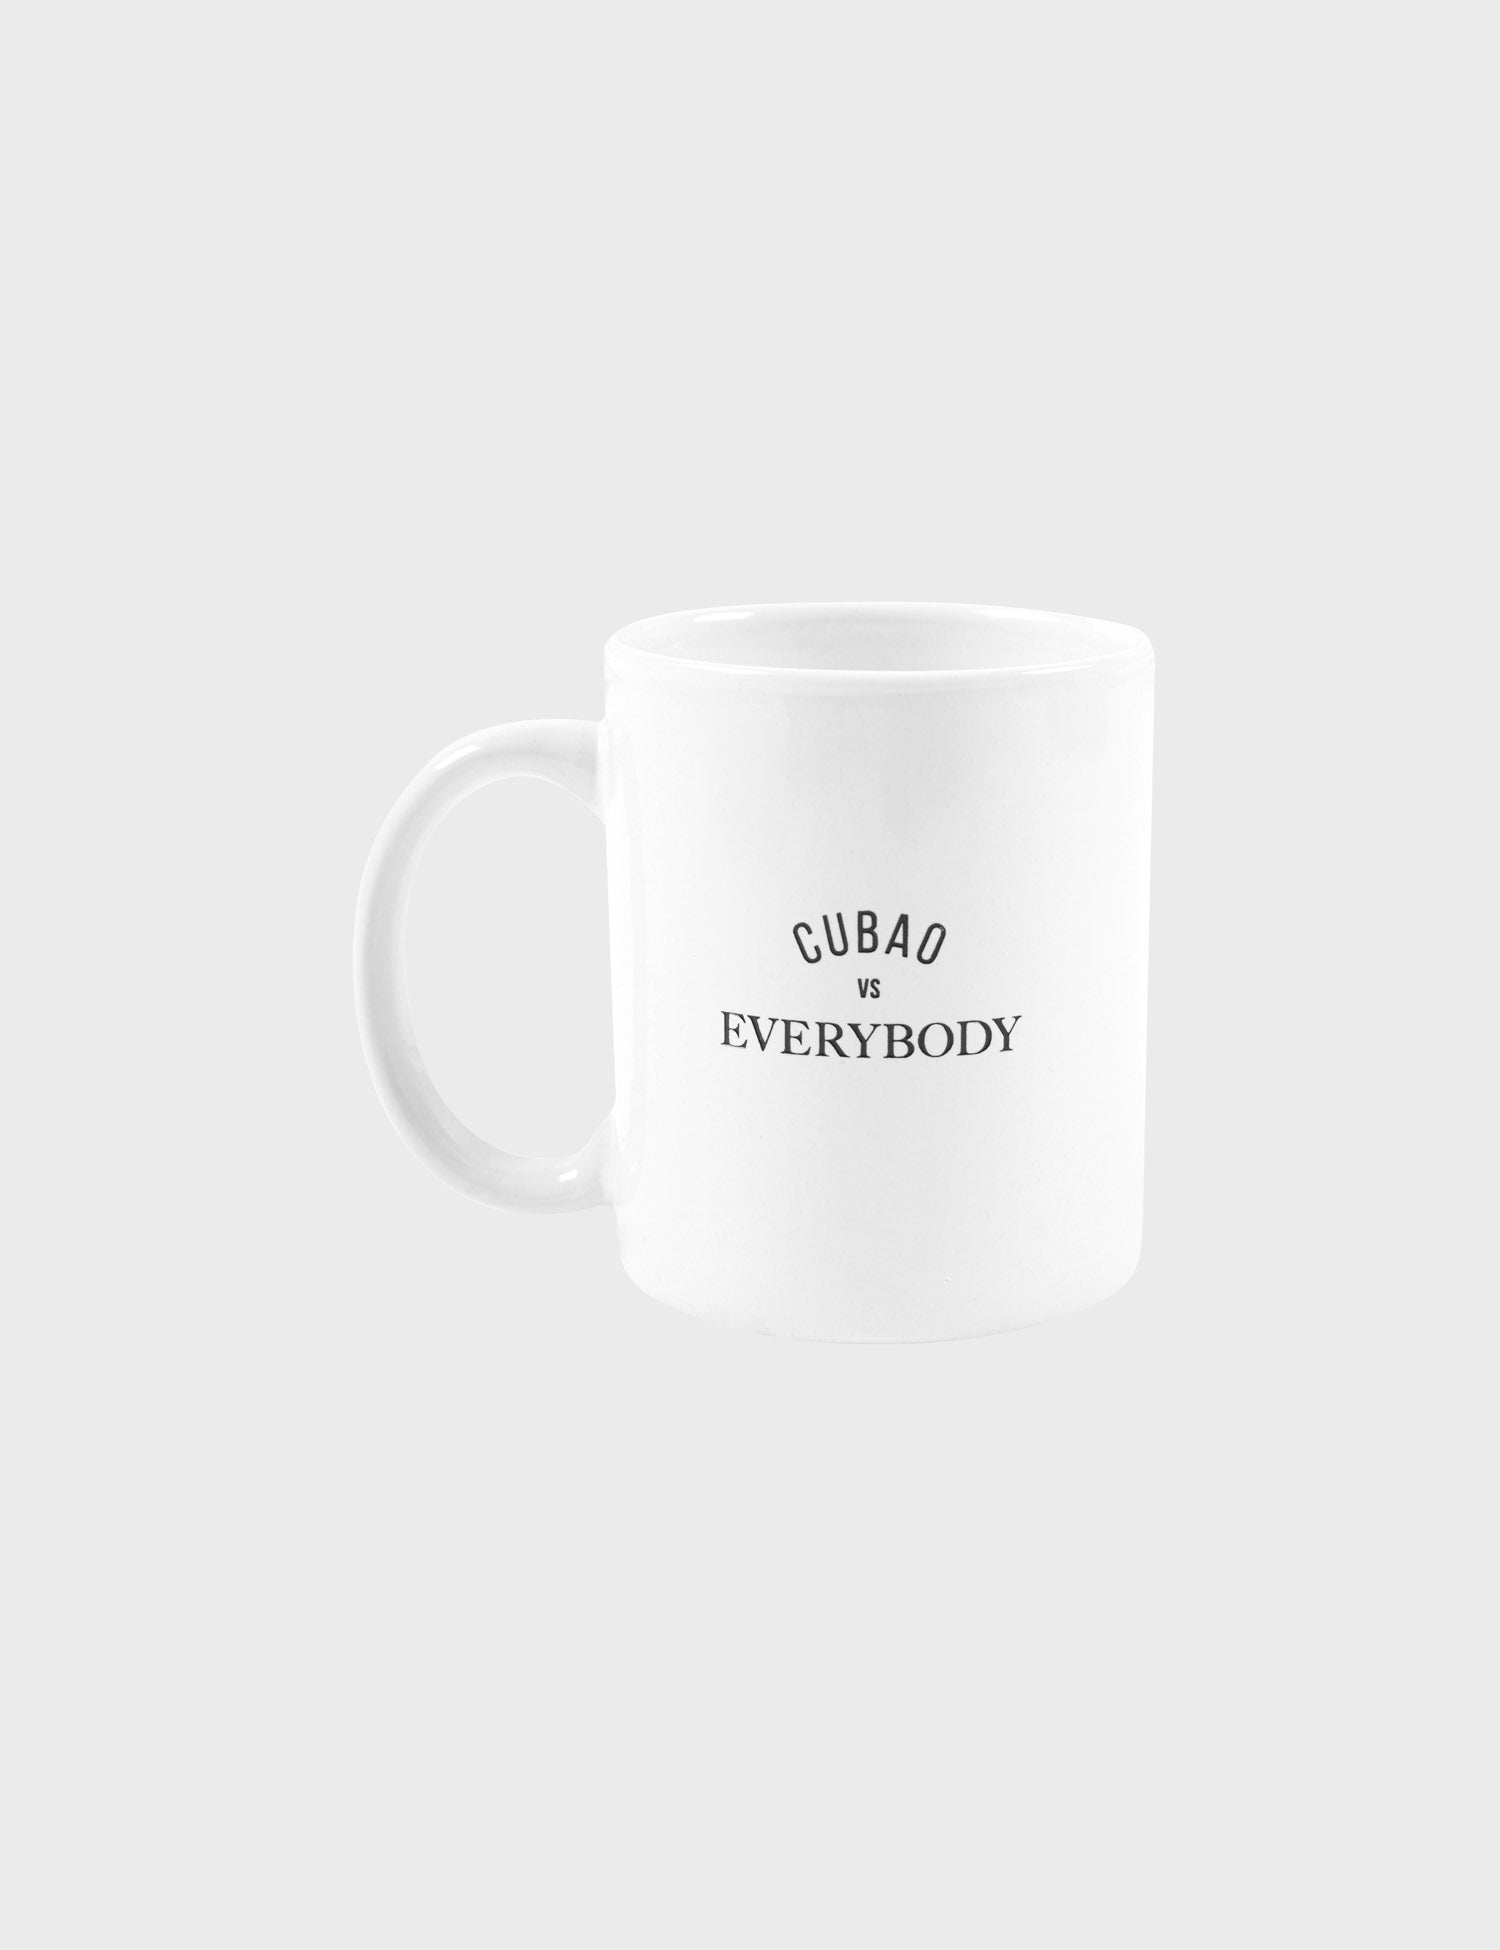 products/tth_2021_home-mug-white_cubaovs.jpg